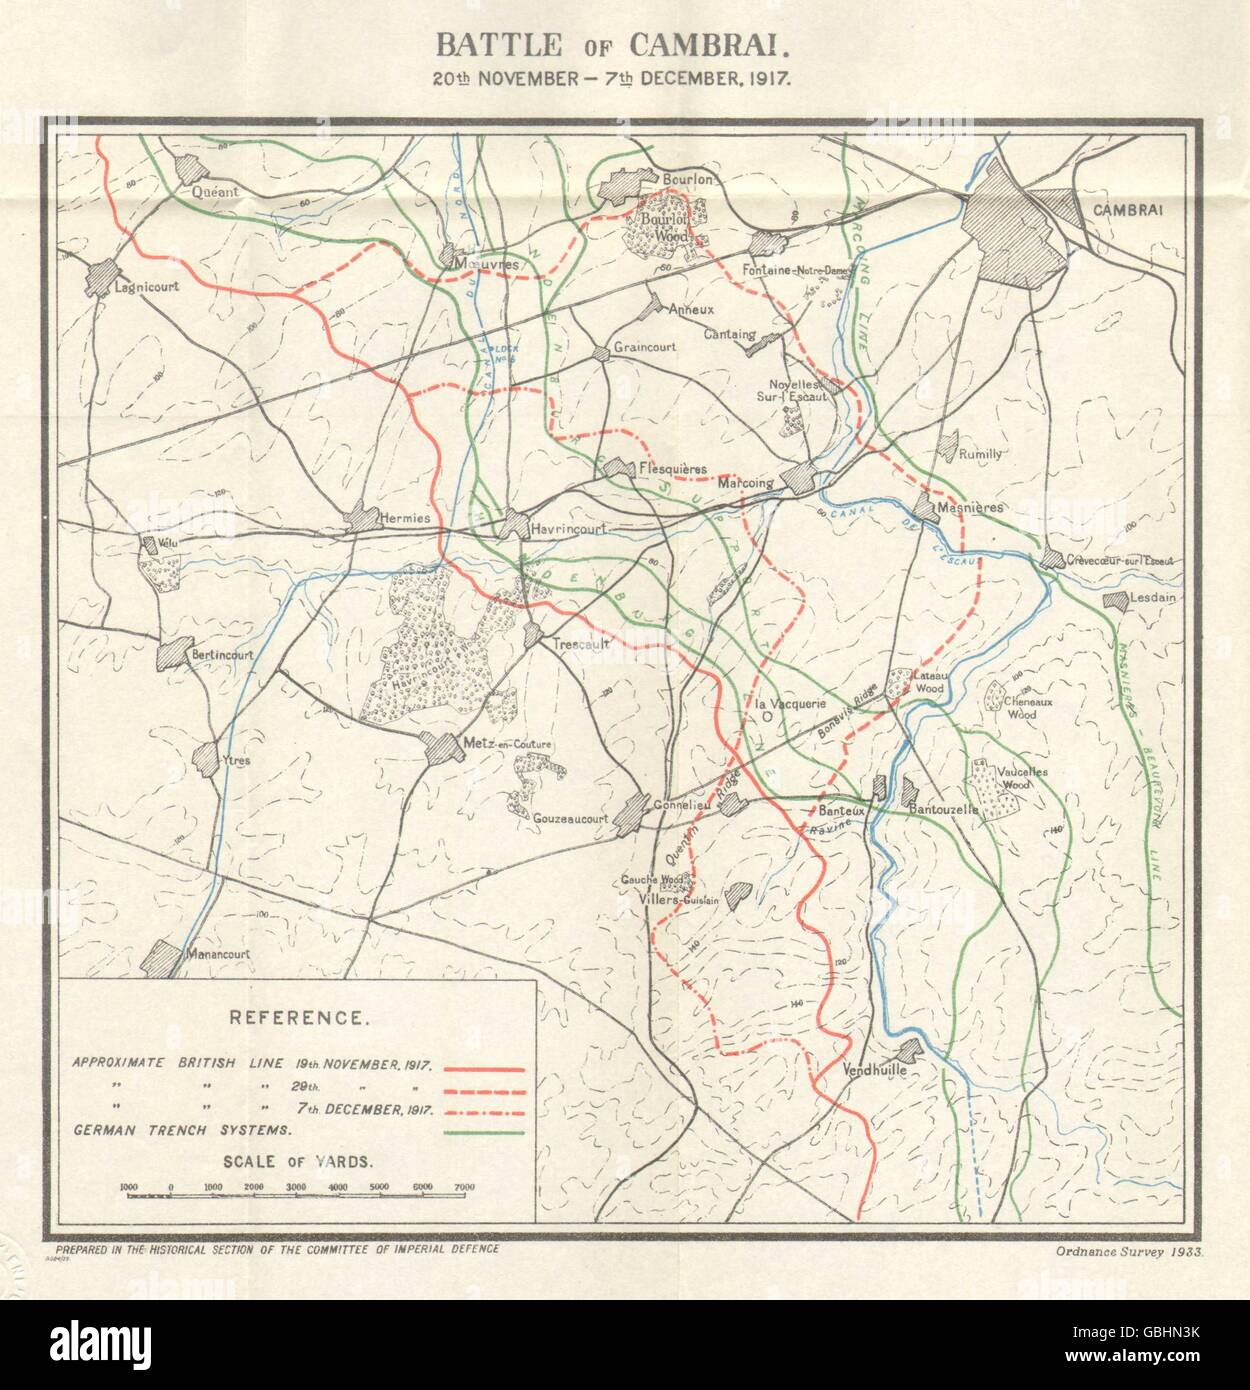 WW1 WESTERN FRONT: Battle of Cambrai, 20 Nov-7 Dec 1917. Trenches, 1934 map - Stock Image